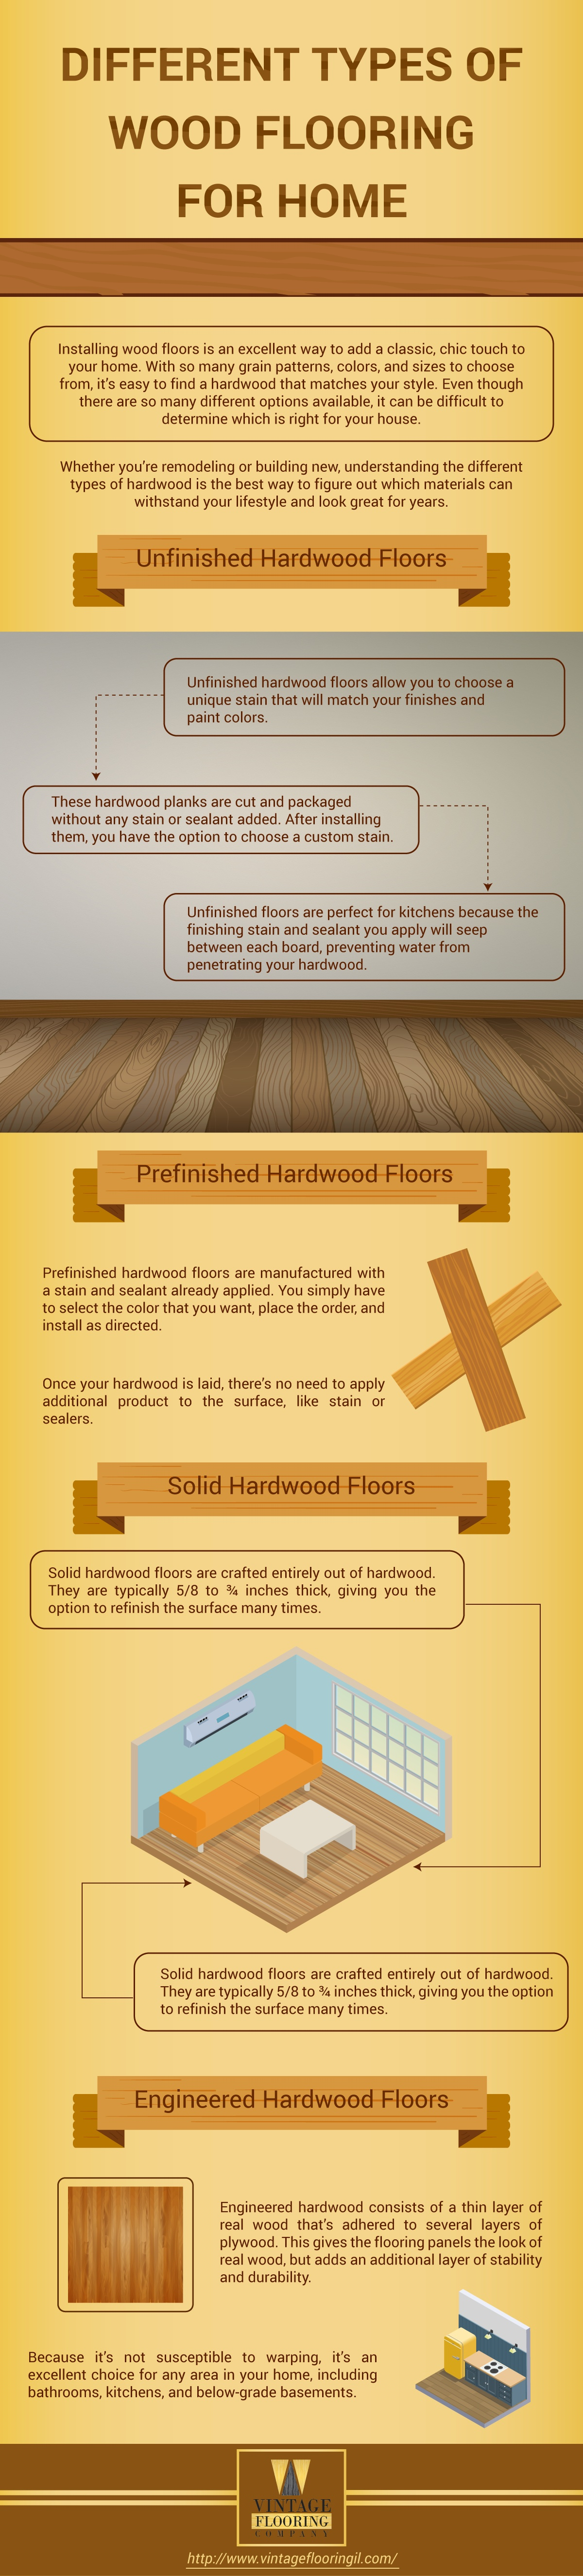 Installing Wood Floors Is An Excellent Way To Add A Classic Chic Touch Your Home With So Many Grain Patterns Colors And Sizes Choose From